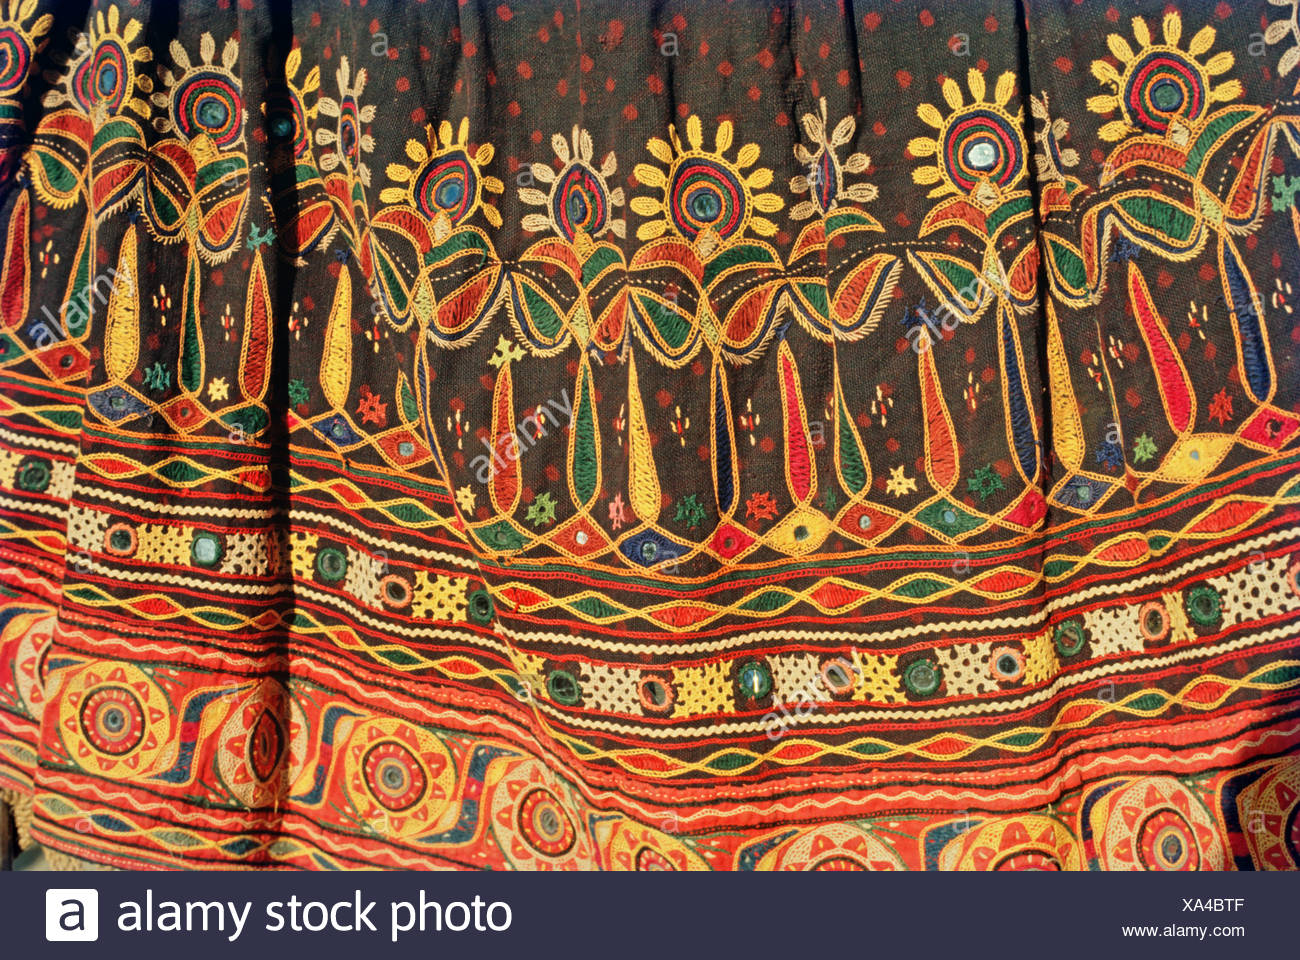 Ahir embroidery - Stock Image